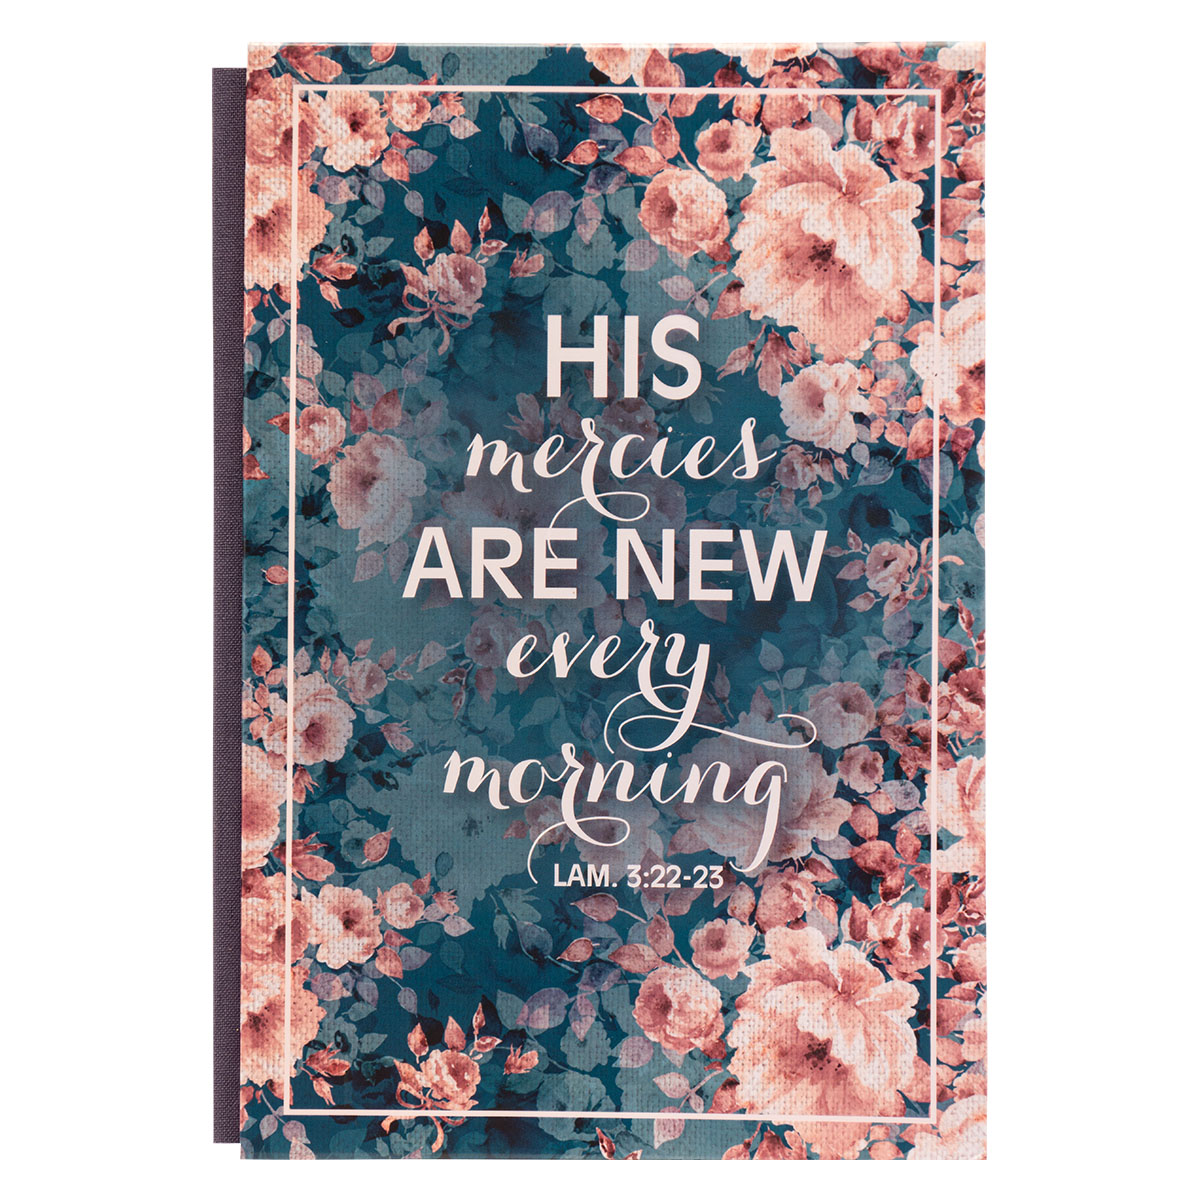 His Mercies Are New Every Morning (Quarter-Bound Hardcover Journal)